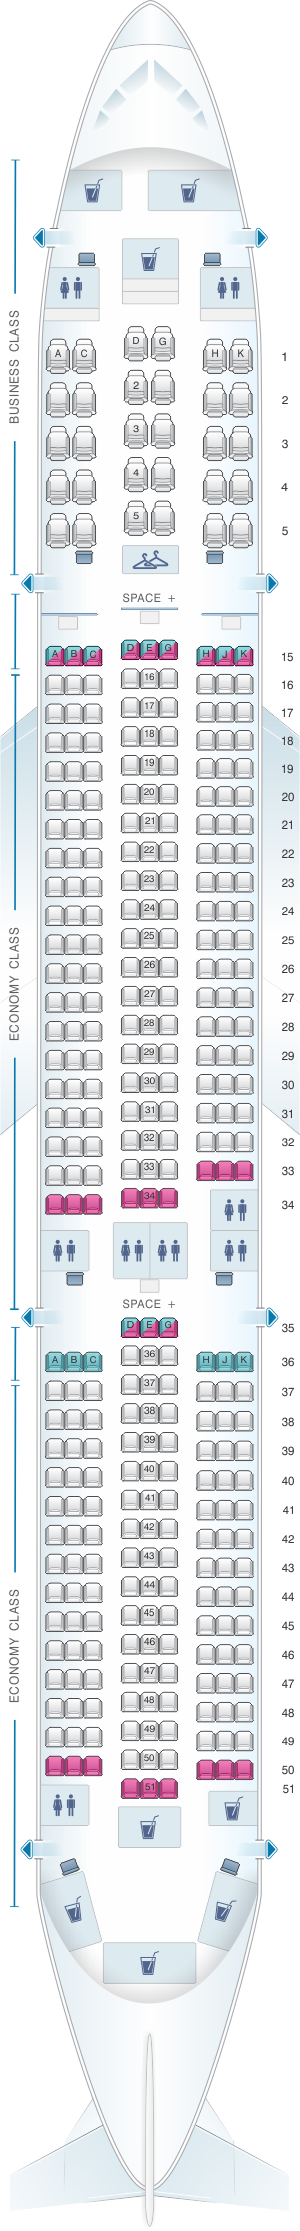 Seat map for LATAM Airlines Brasil Airbus A350